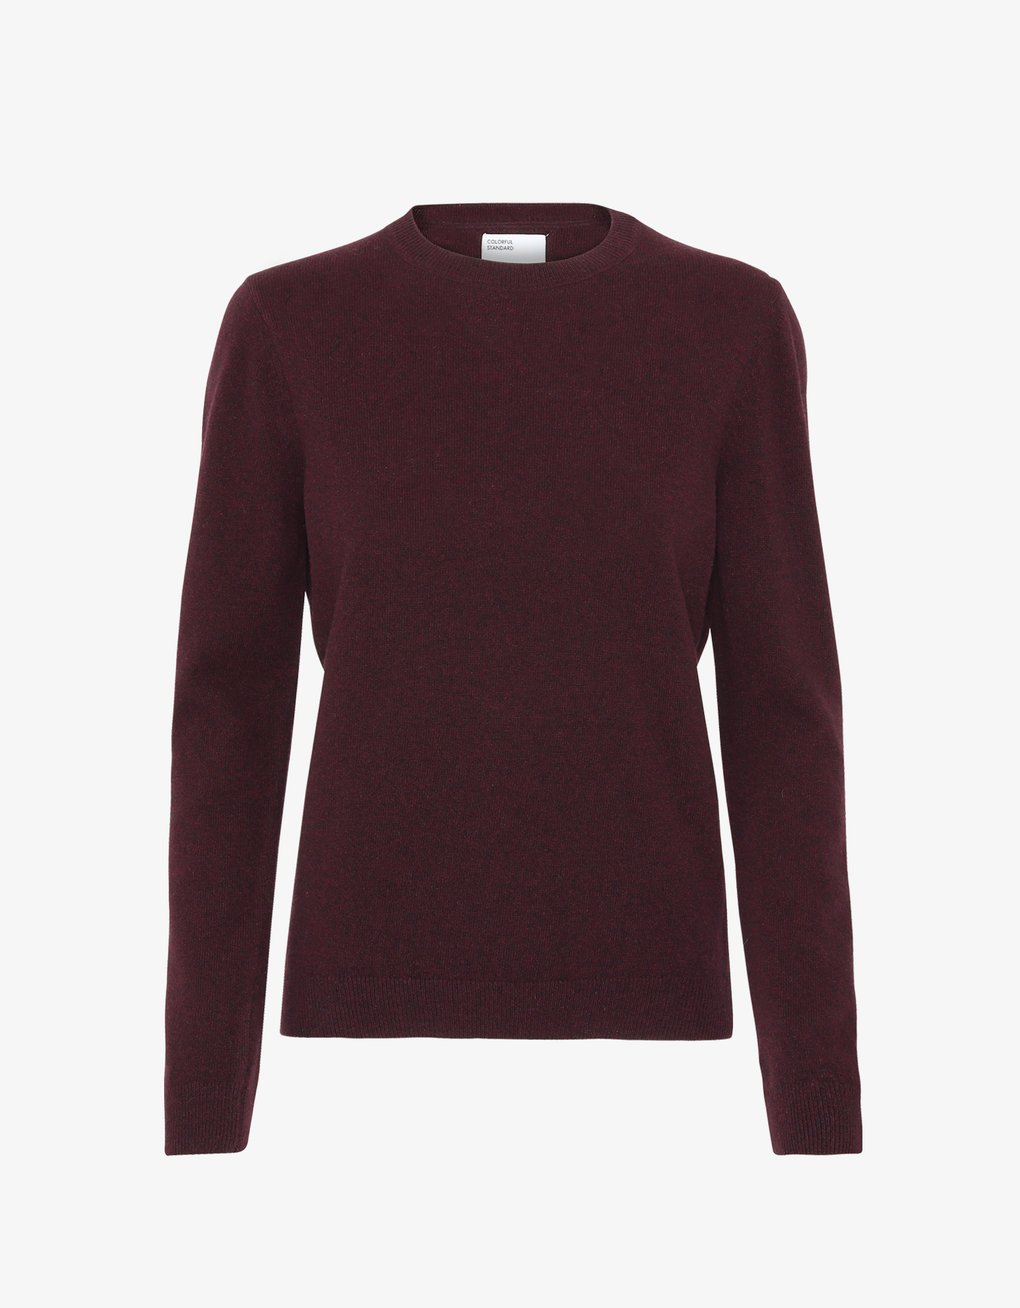 COLORFUL STANDARD | Light Merino Wool Crewneck | Oxblood Red - LONDØNWORKS